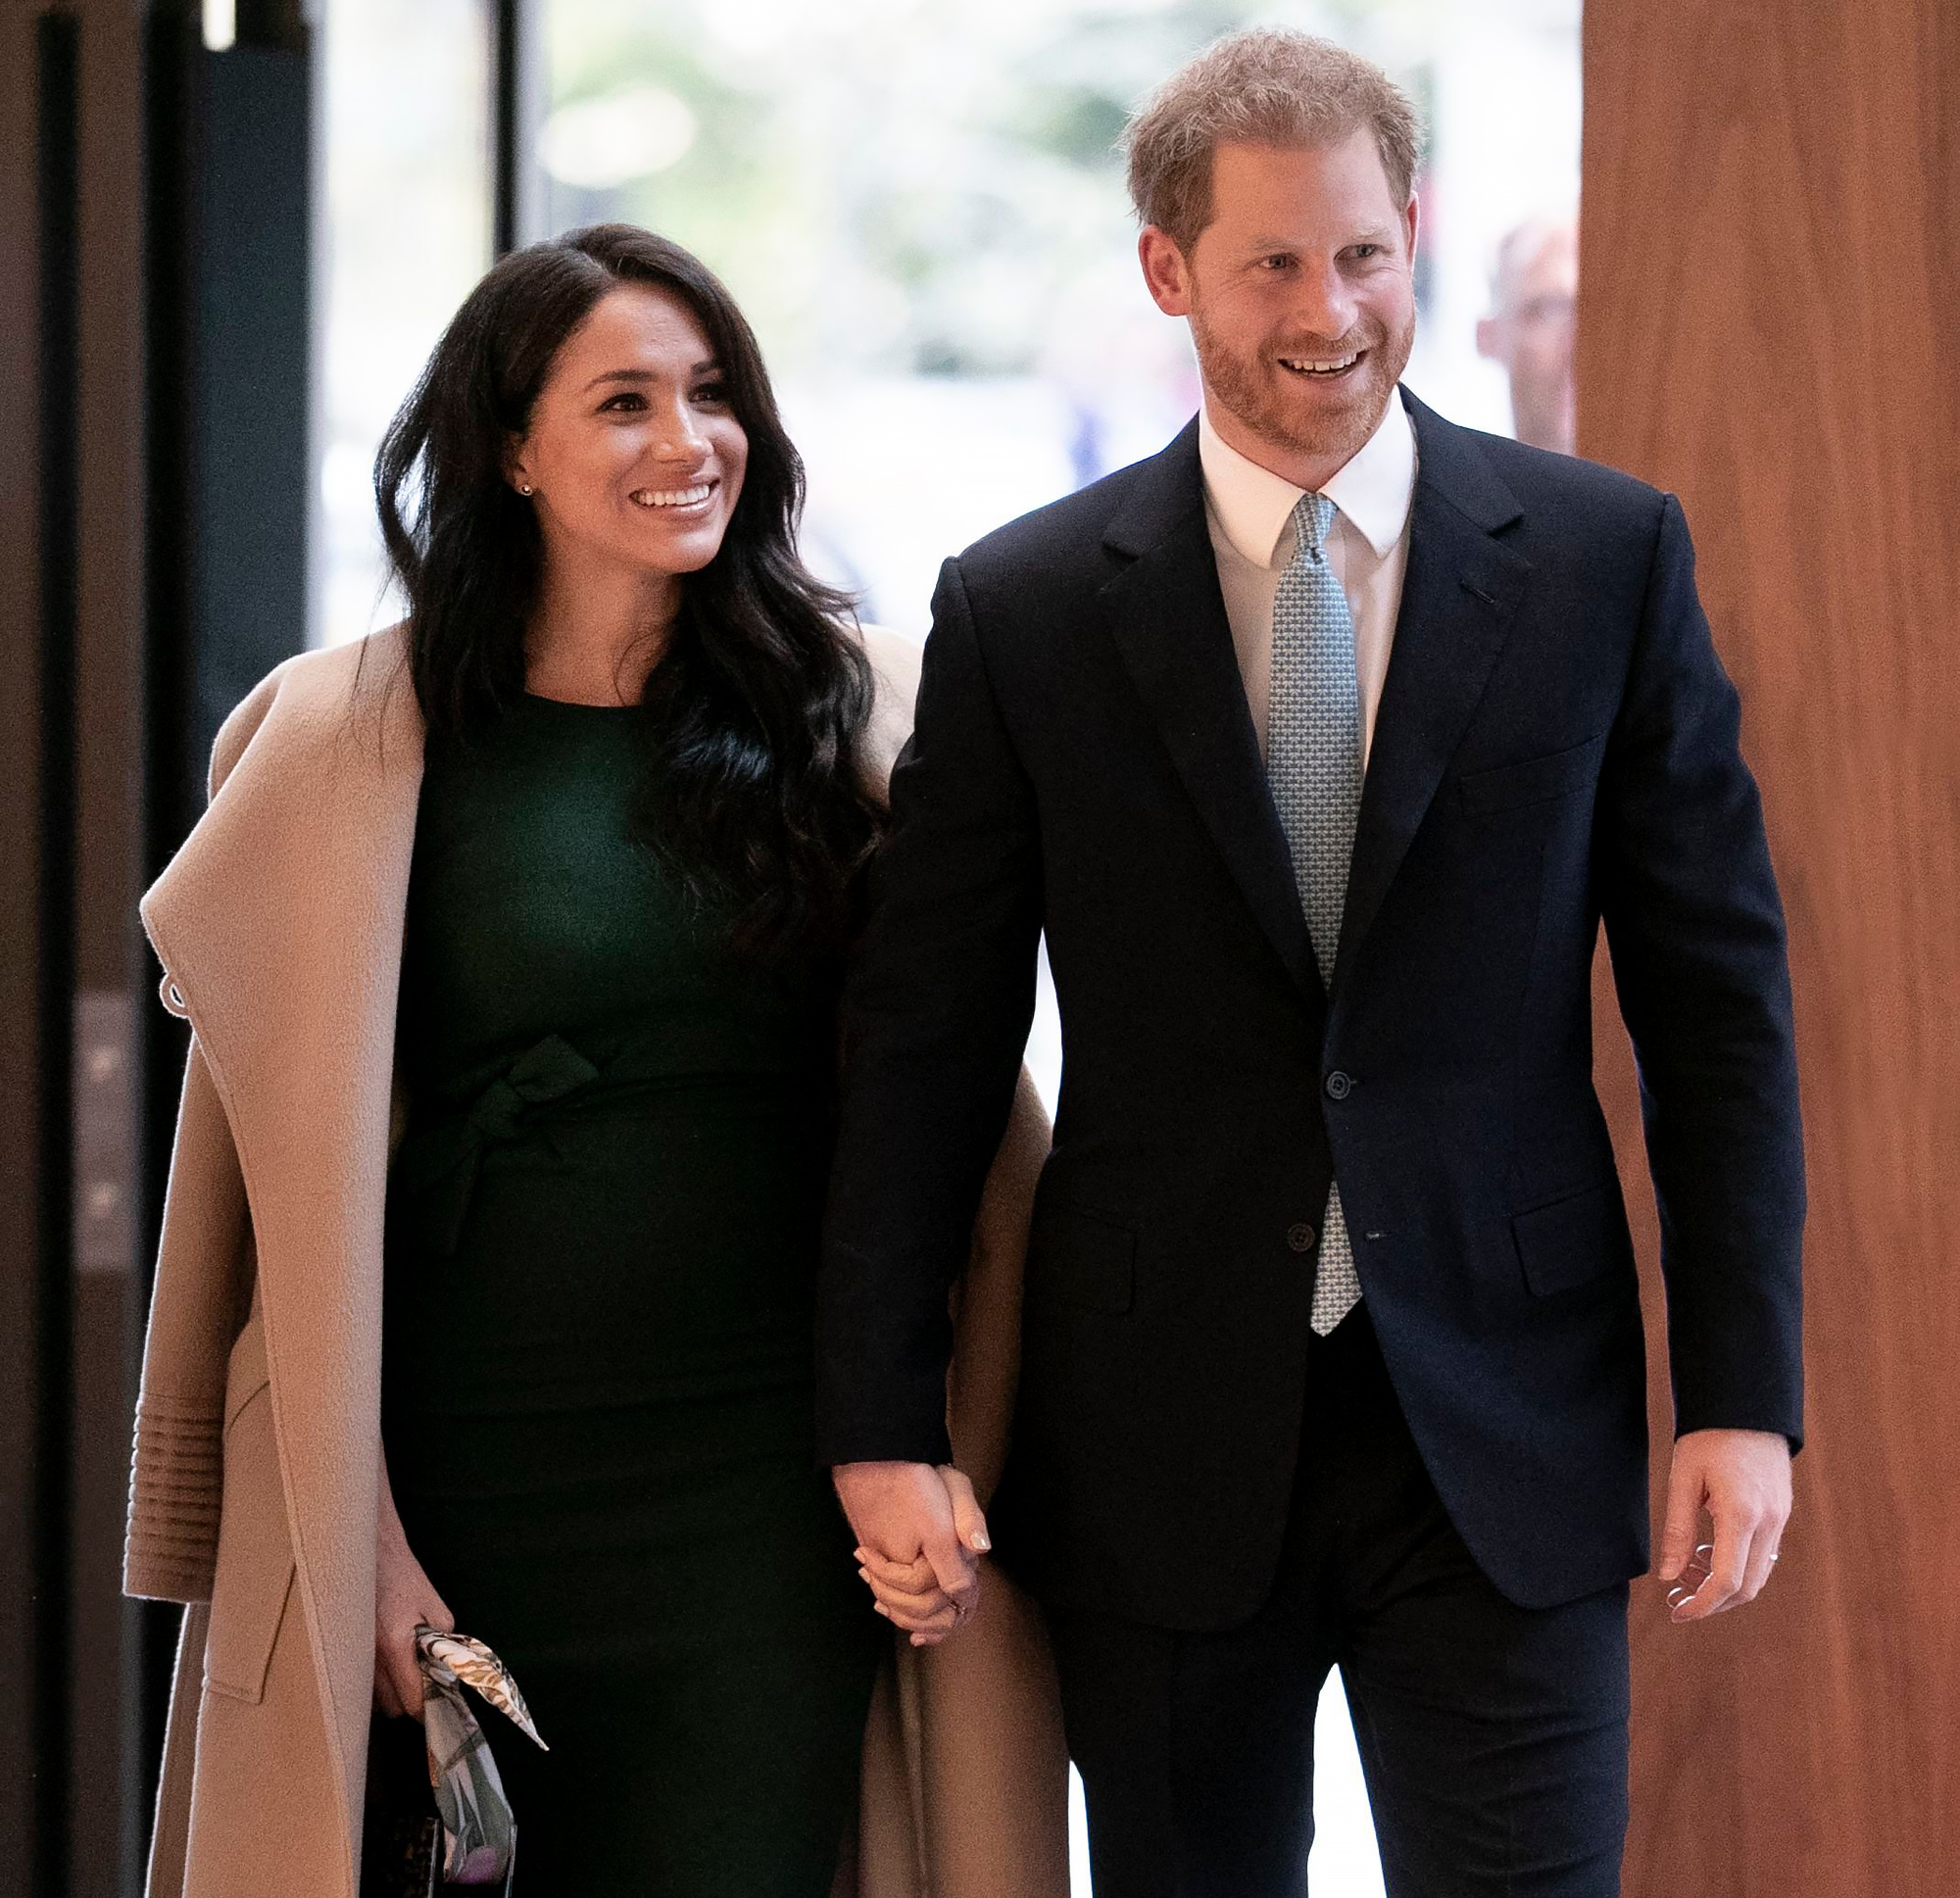 Prince-Harry-Drops-Hints-About-2nd-Baby-With-Duchess-Meghan